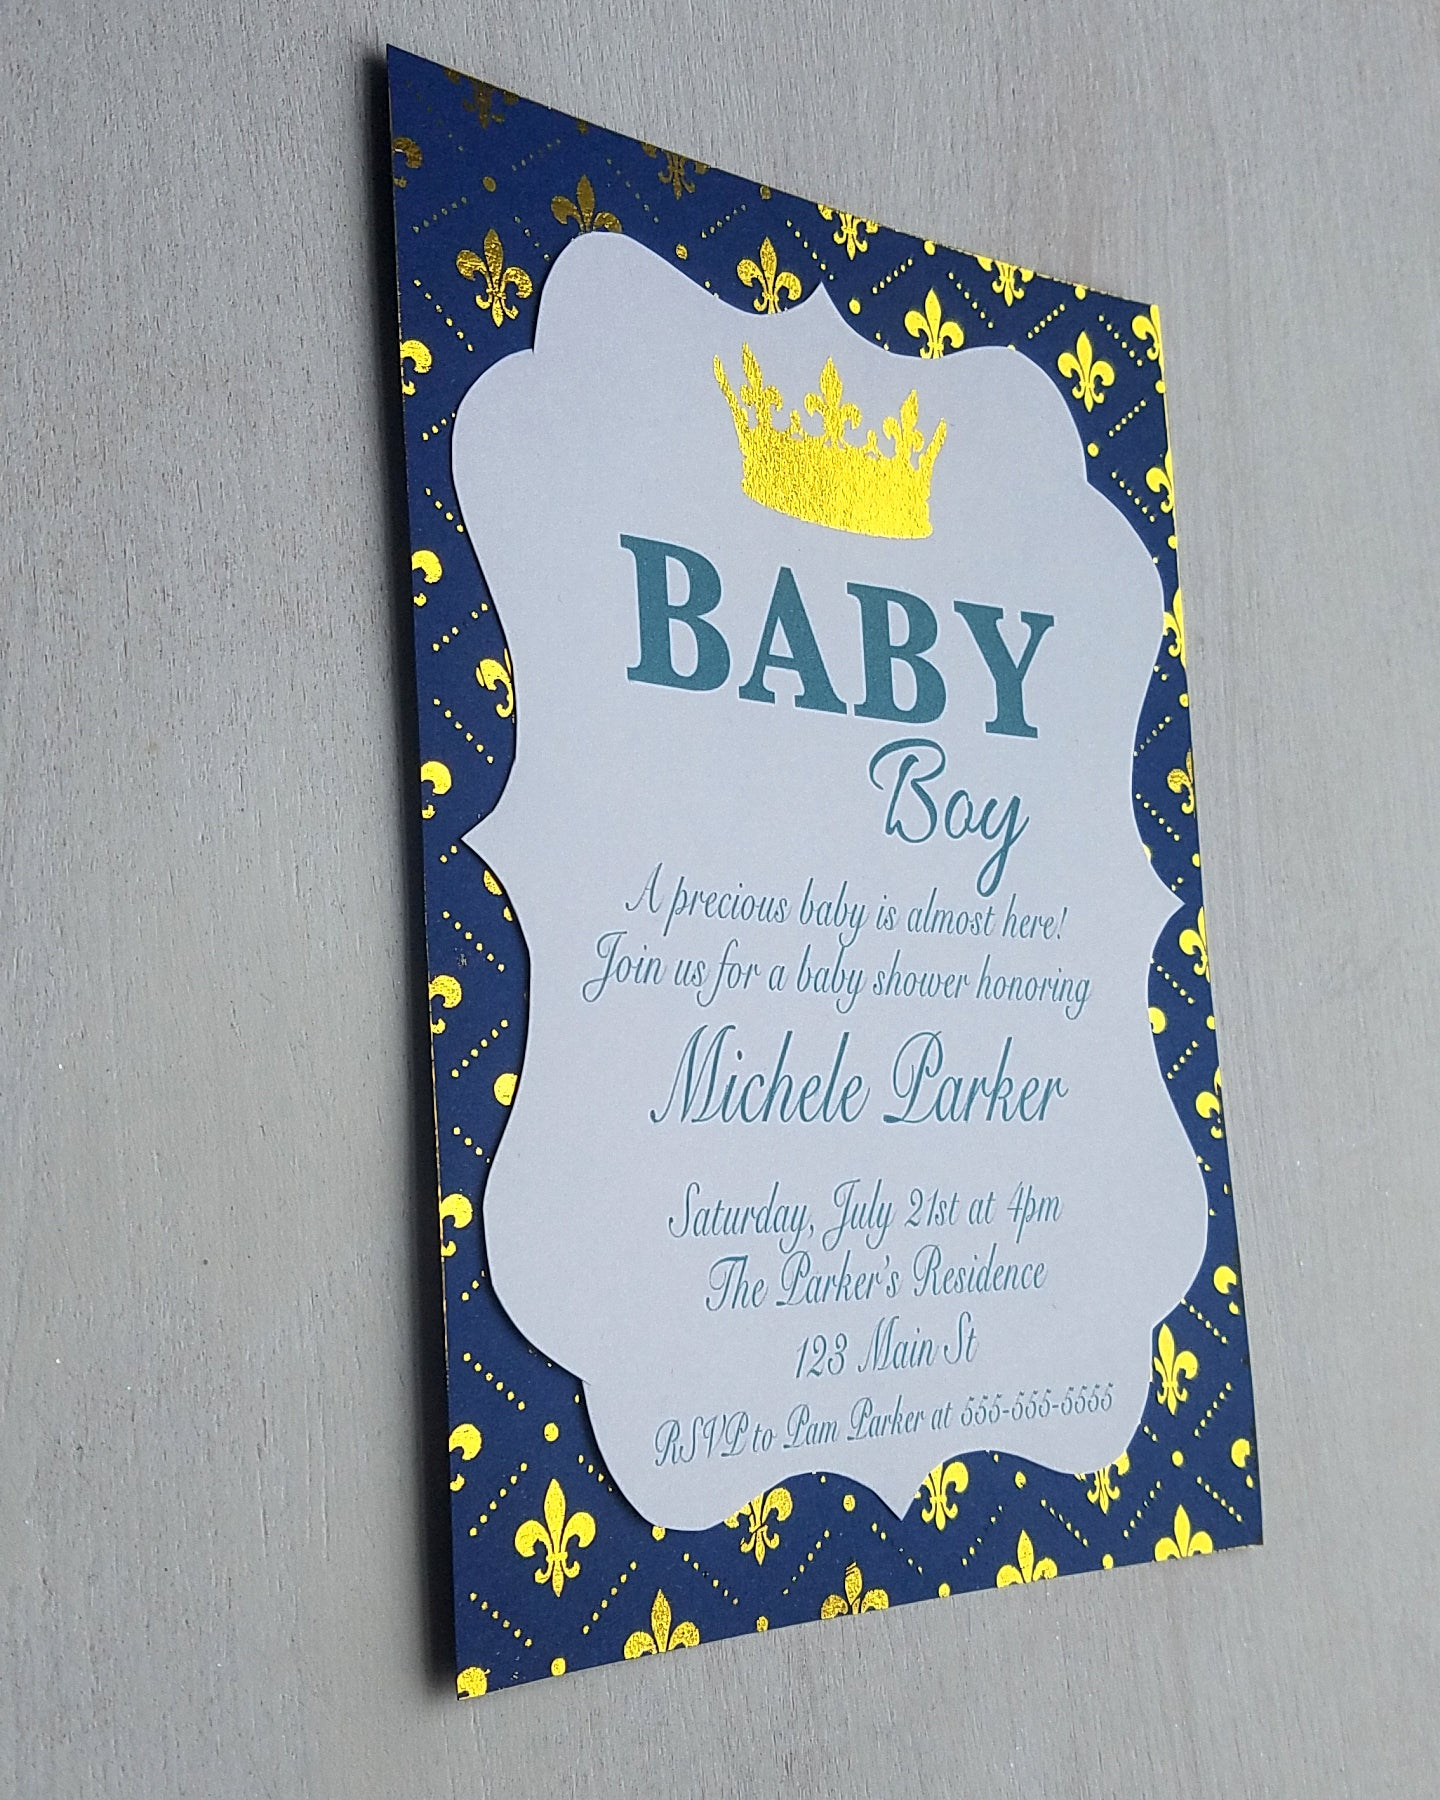 Royal Prince Baby Shower Invitations - Kaela Party Craft